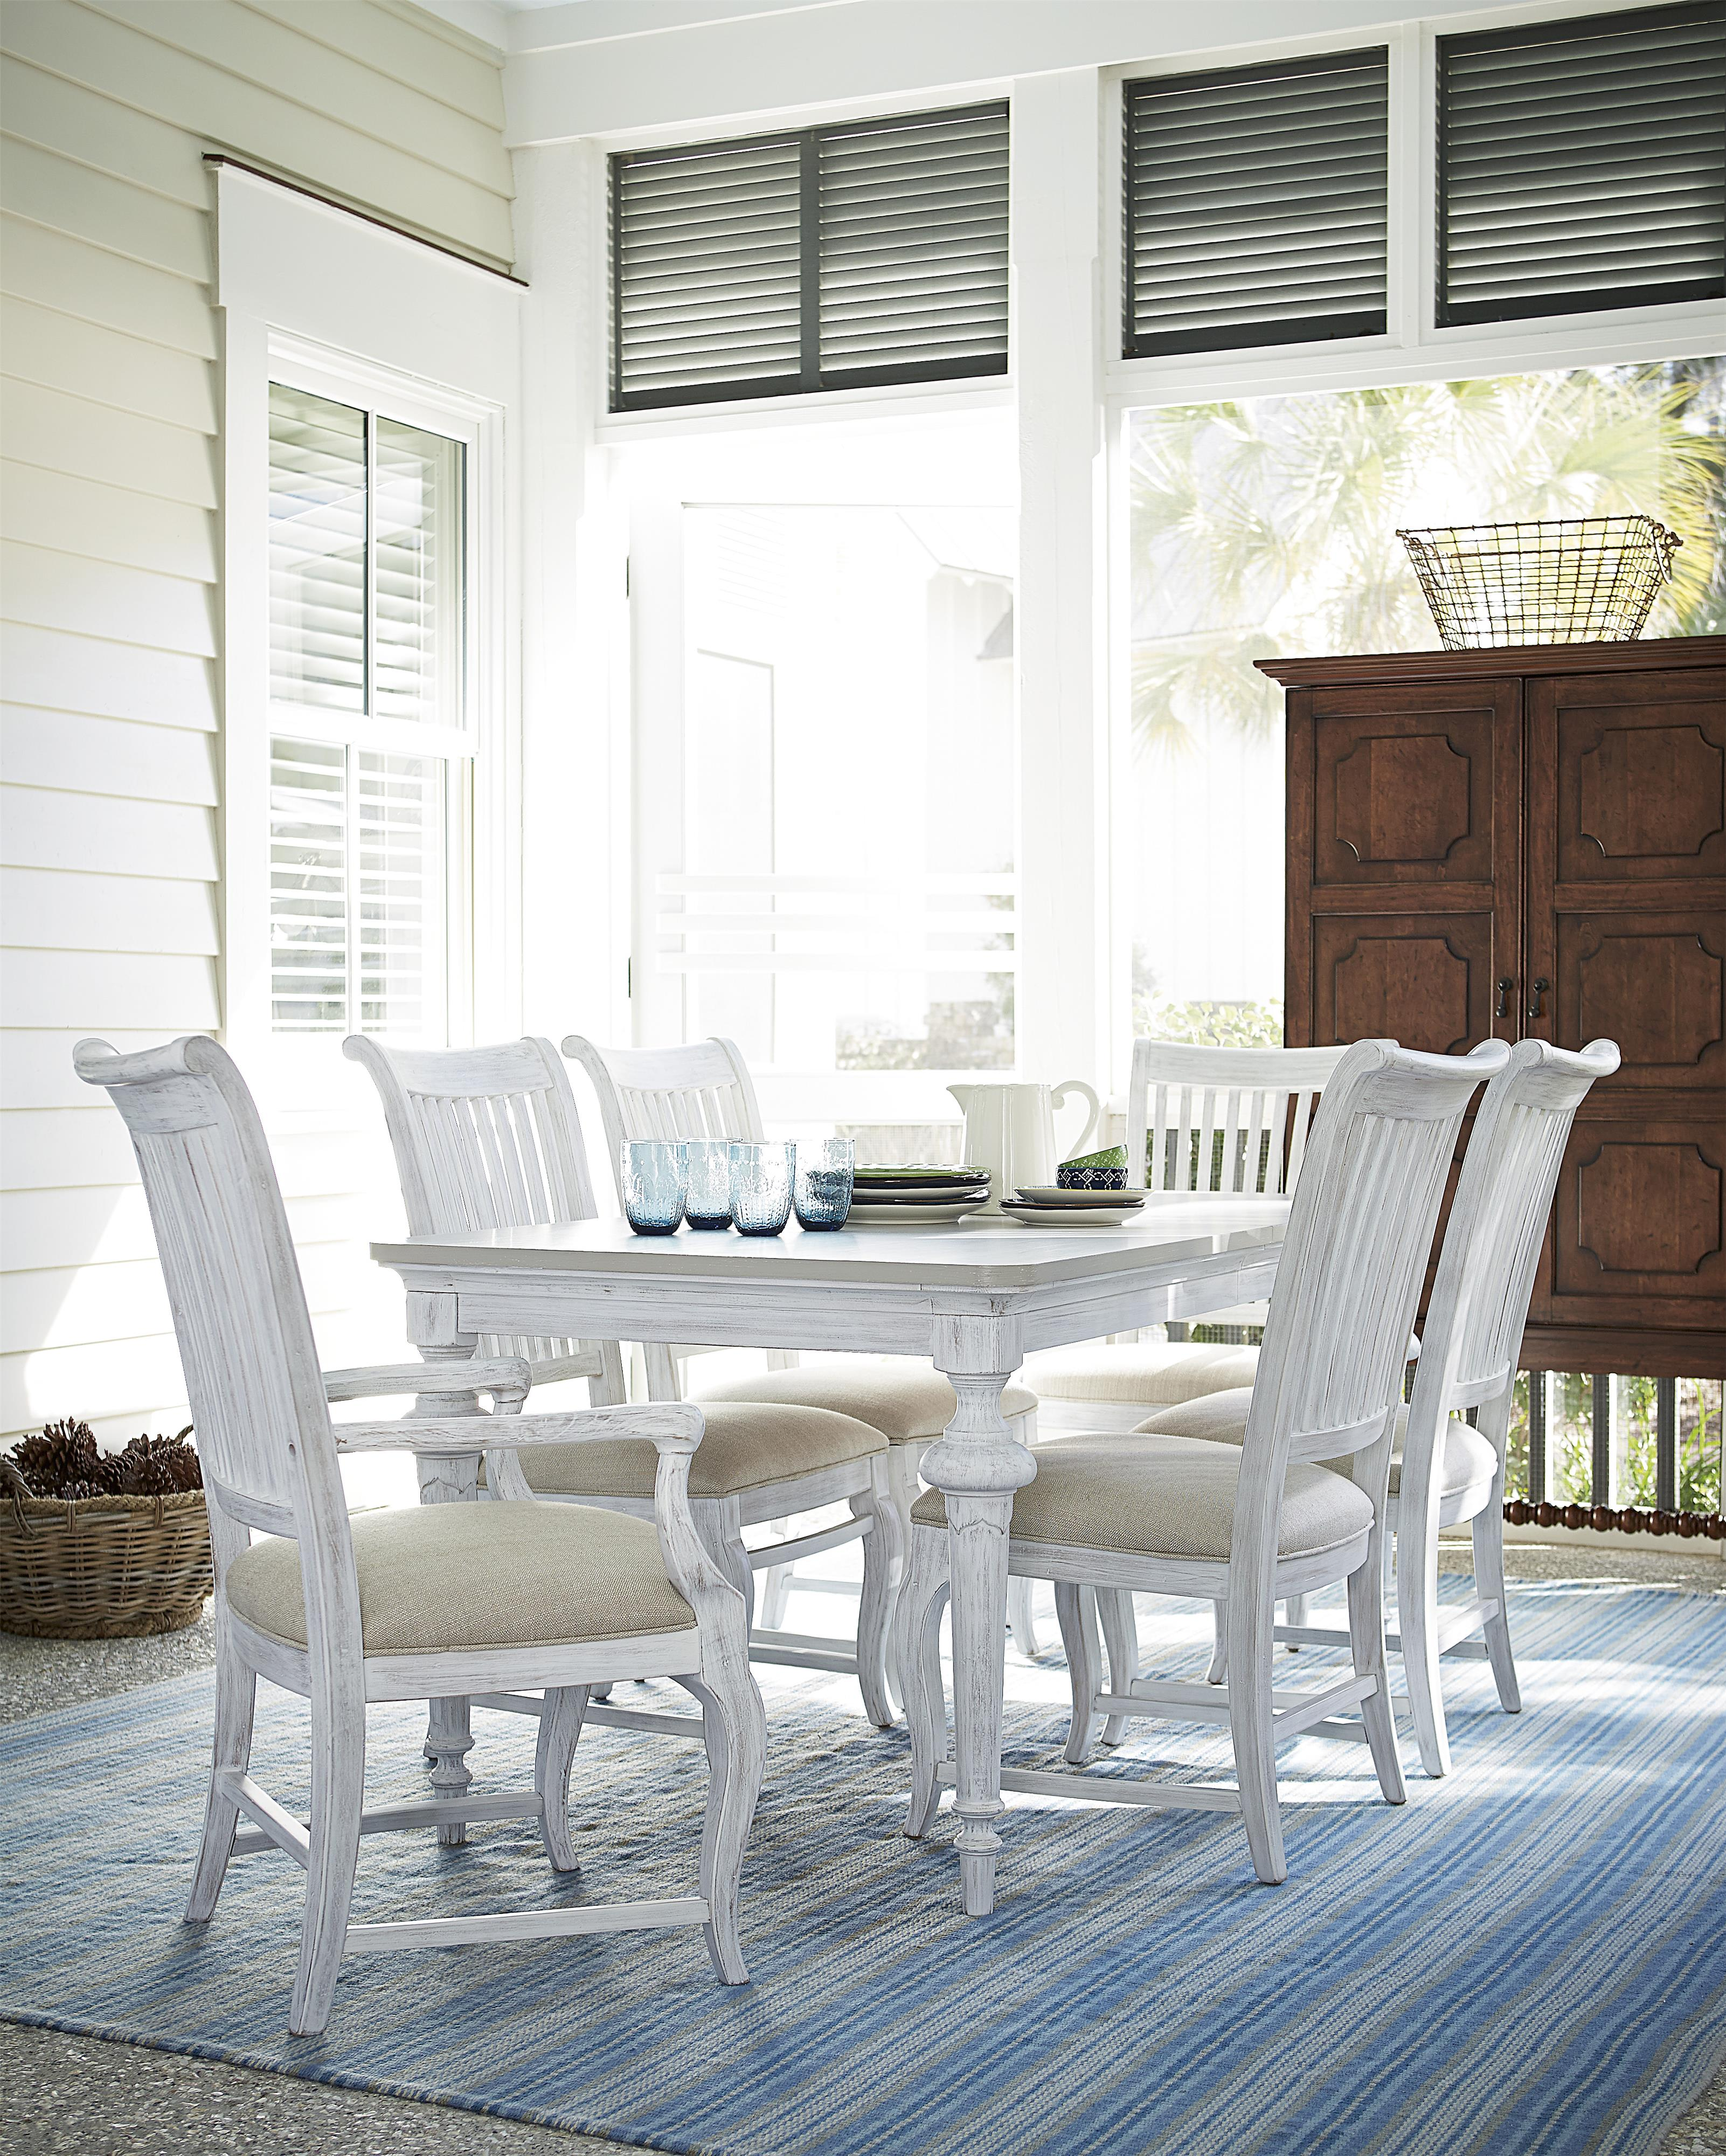 paula deen dogwood dining chairs plus size by universal side chair with